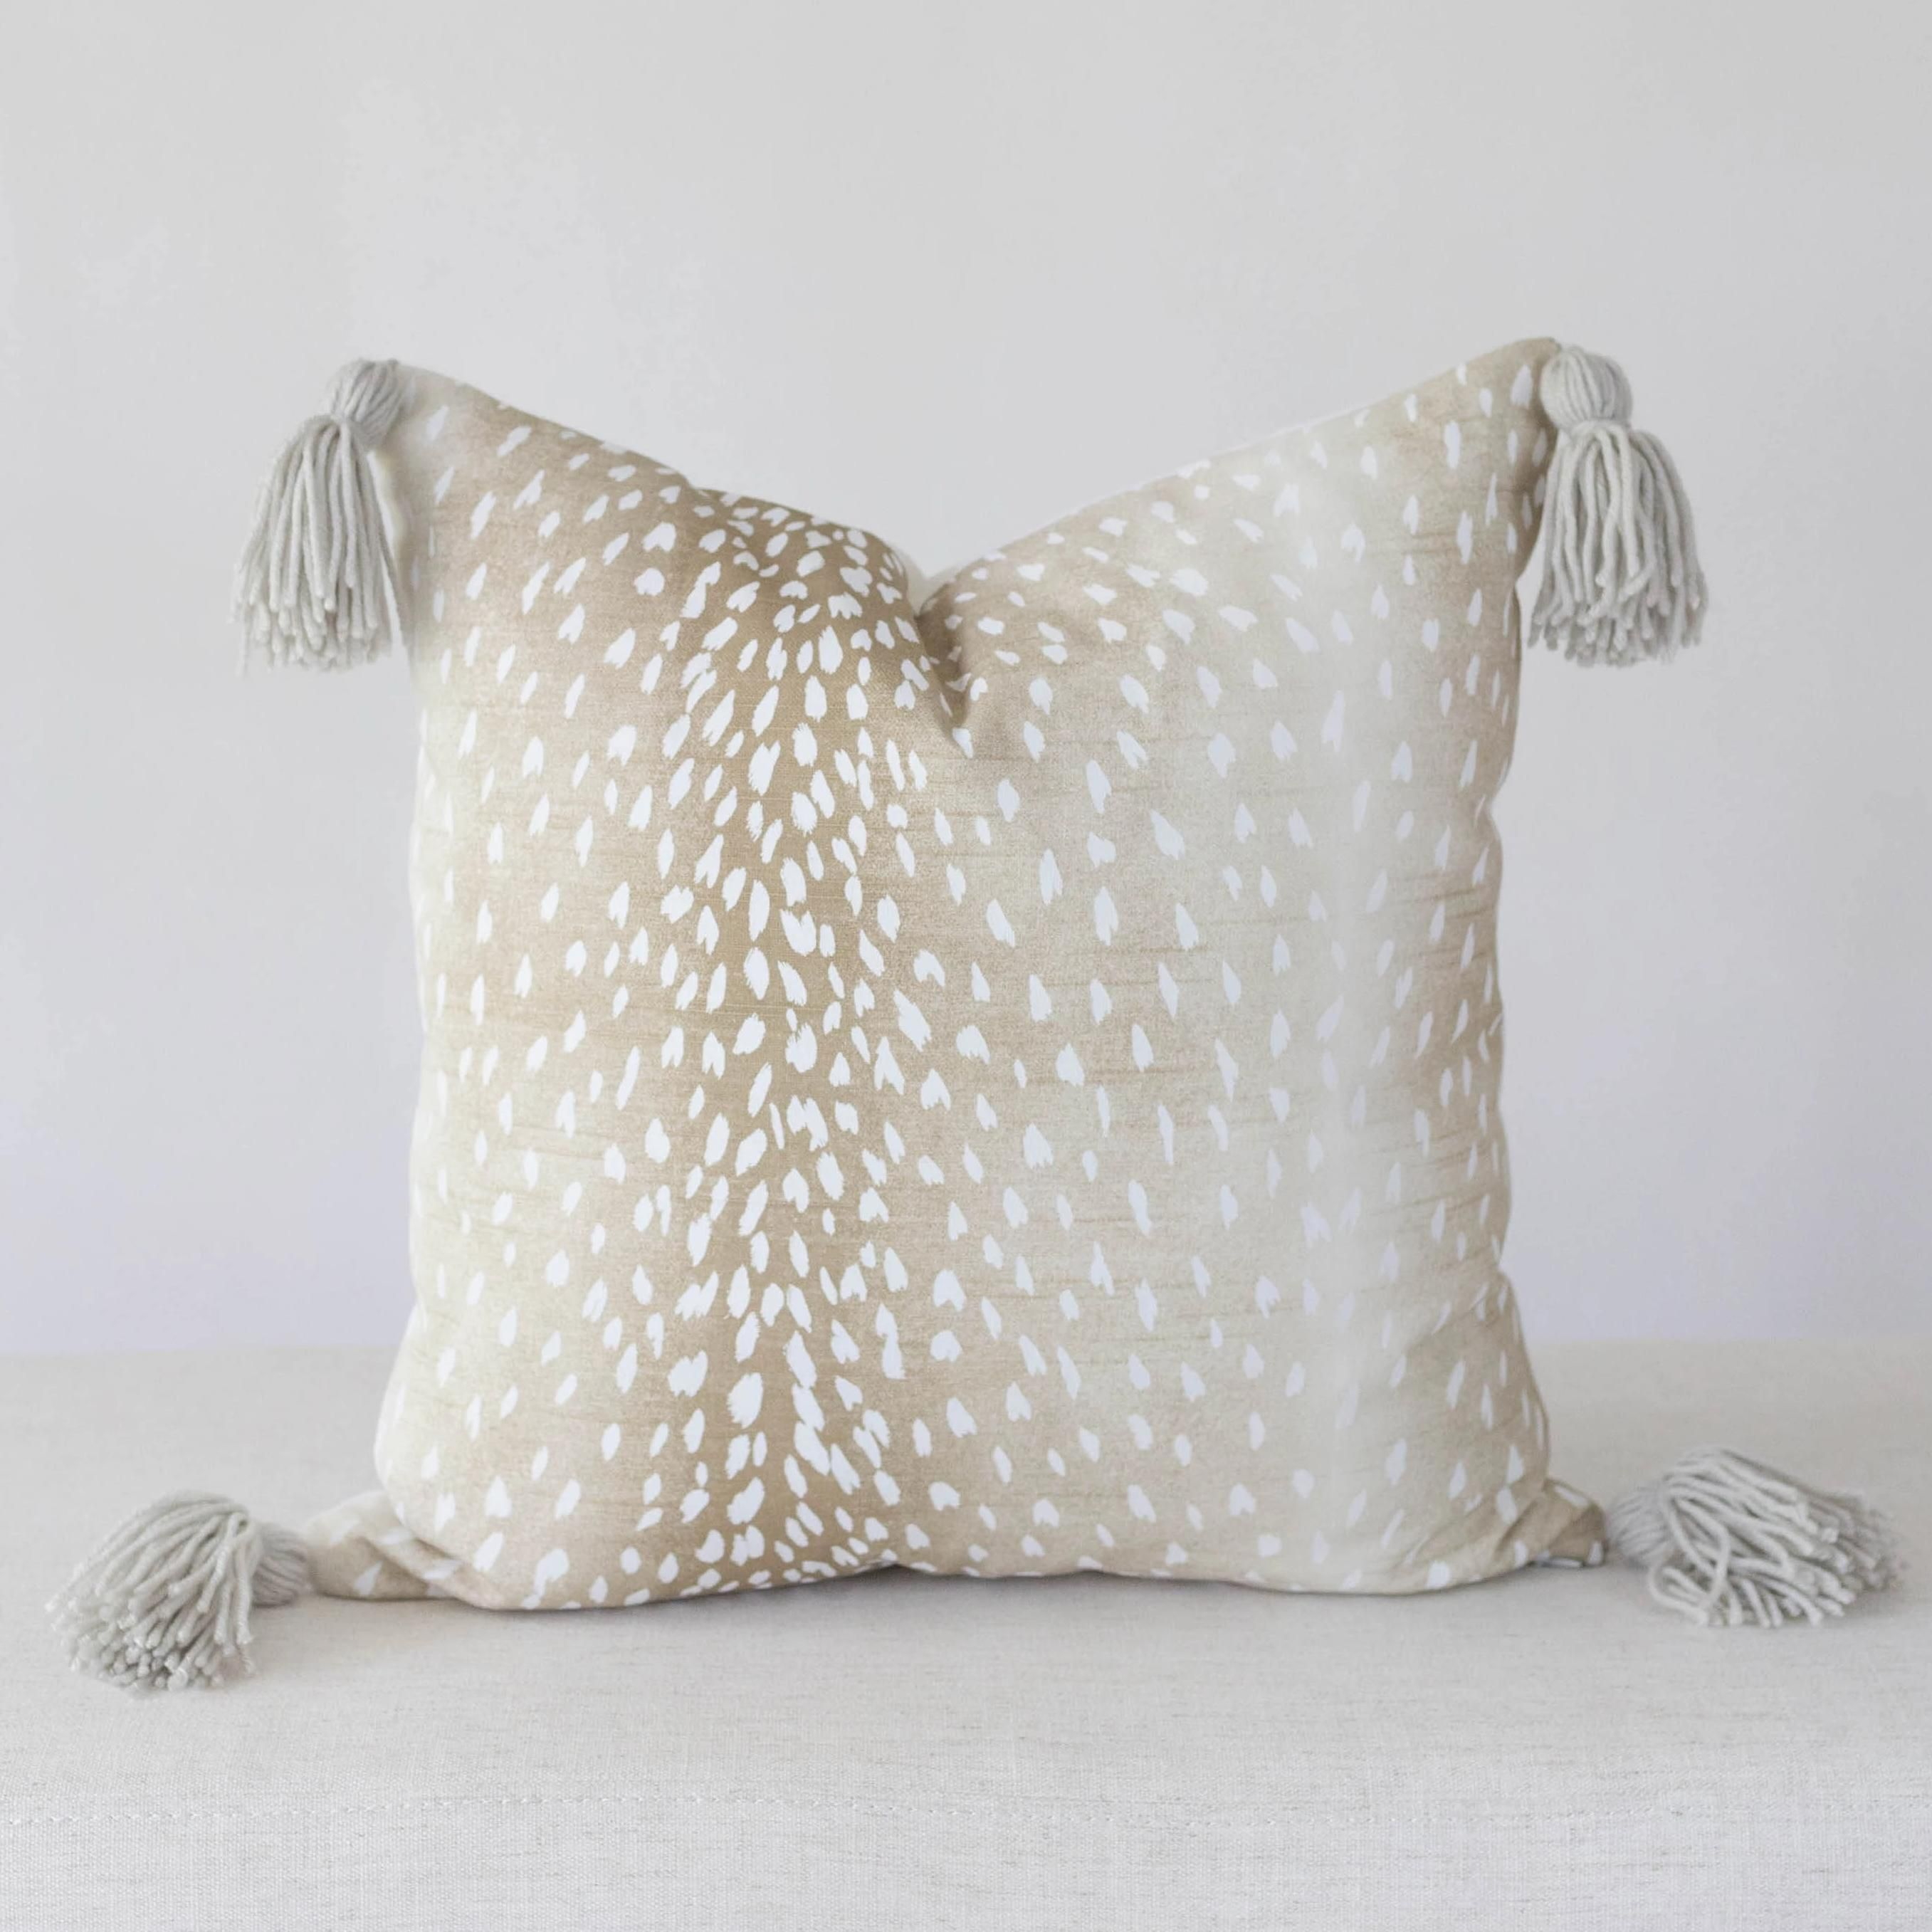 Antelope Pillow Cover With Tassels In 2020 Pillows Pillow Covers Antelope Rug